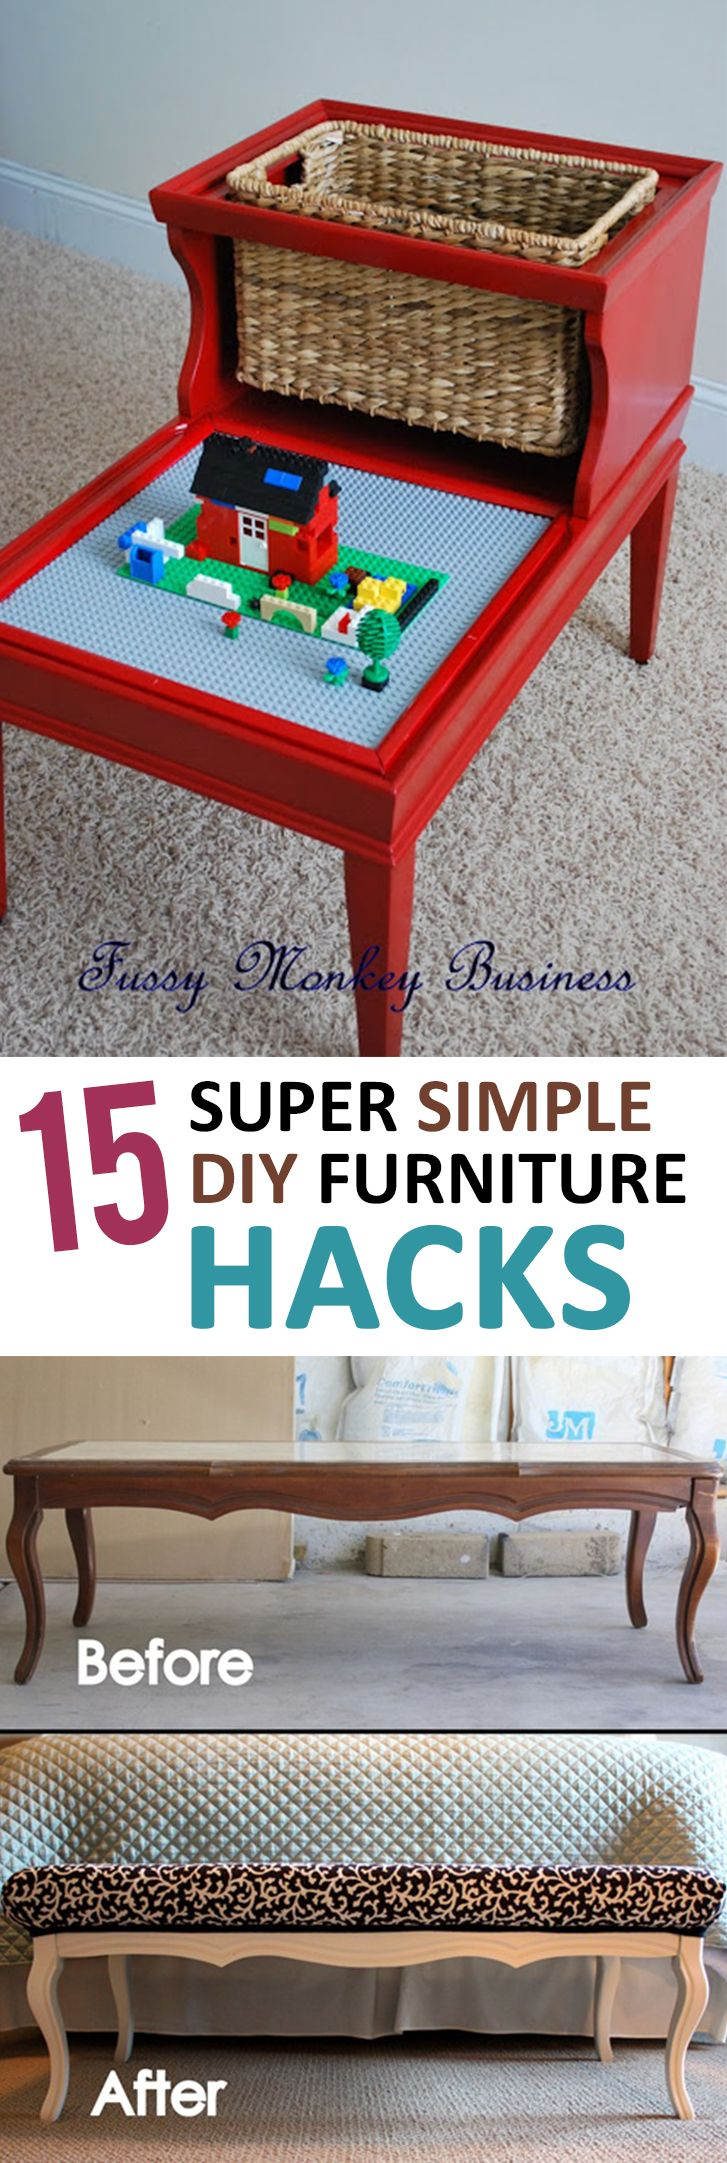 DIY Furniture, DIY Furniture Hacks, DIY Furniture Tips and Tricks, Furniture, Homemade Furniture, Thrift Store Shopping, Thrift Store Shopping Tips, DIY Home, Easy DIY Remodels.